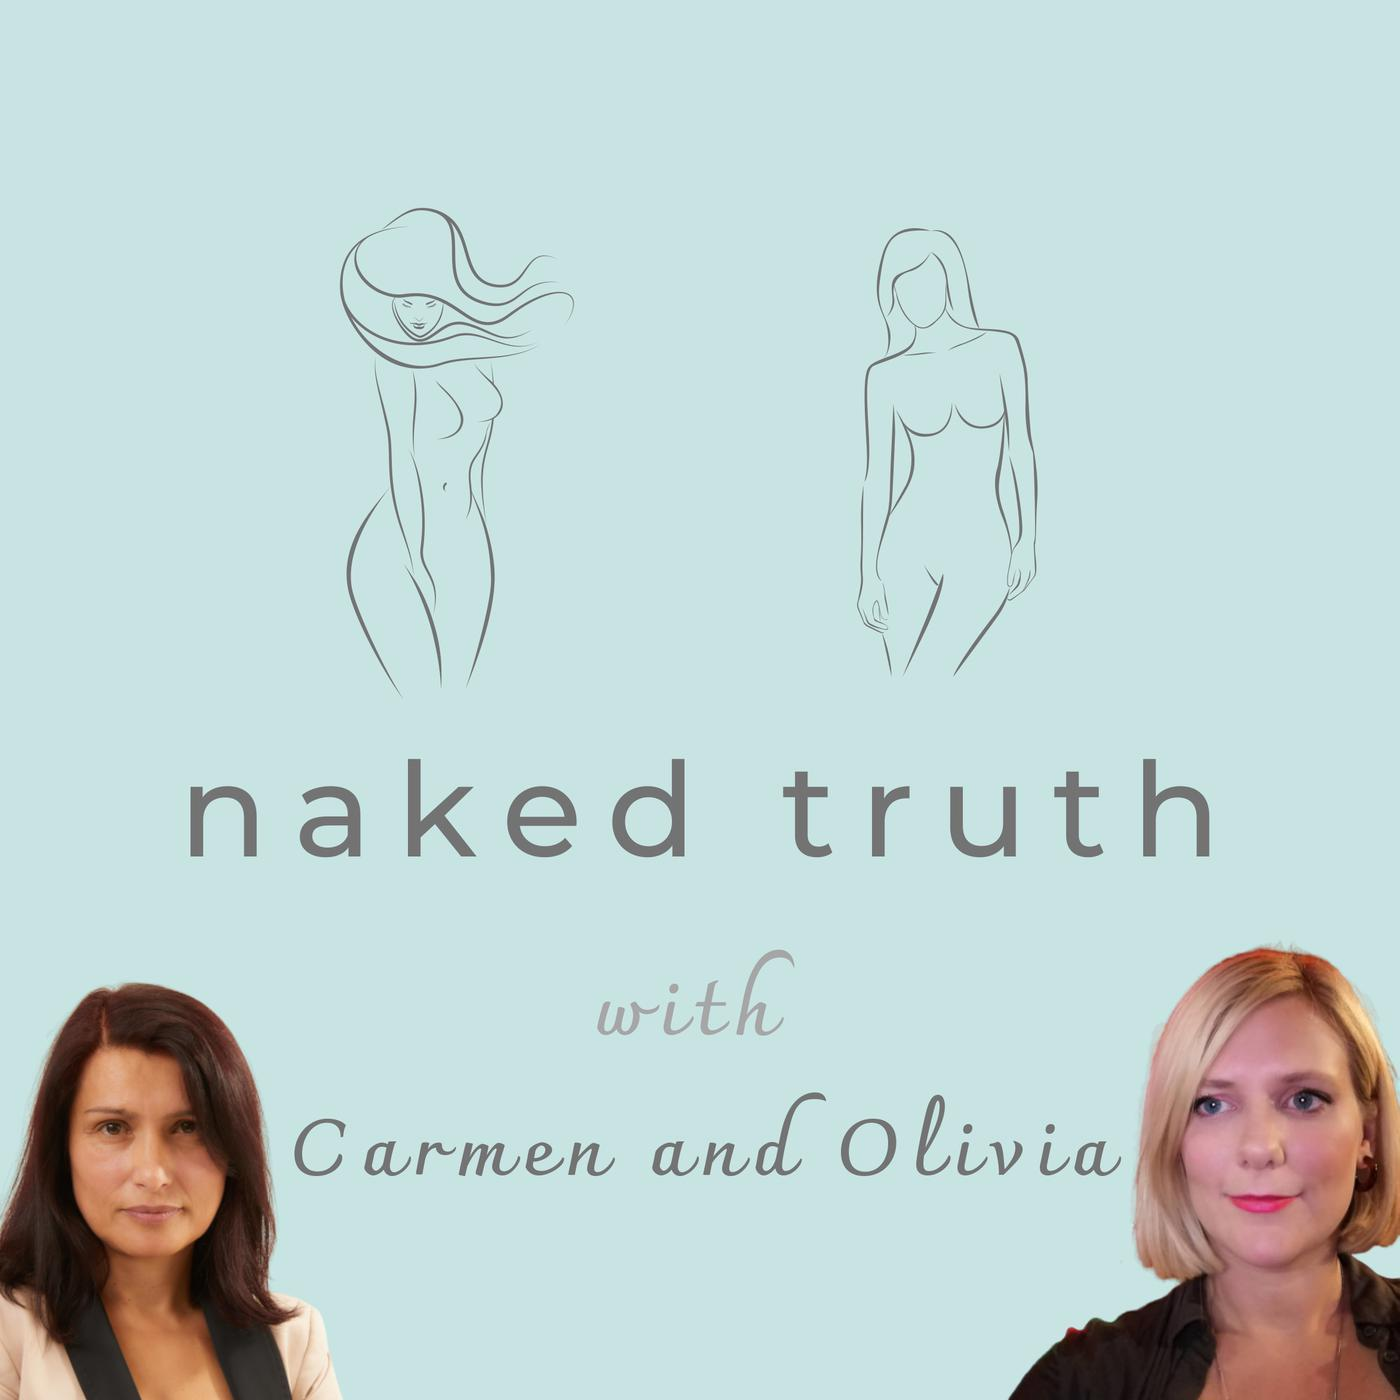 Introducing 'Naked Truth with Carmen & Olivia